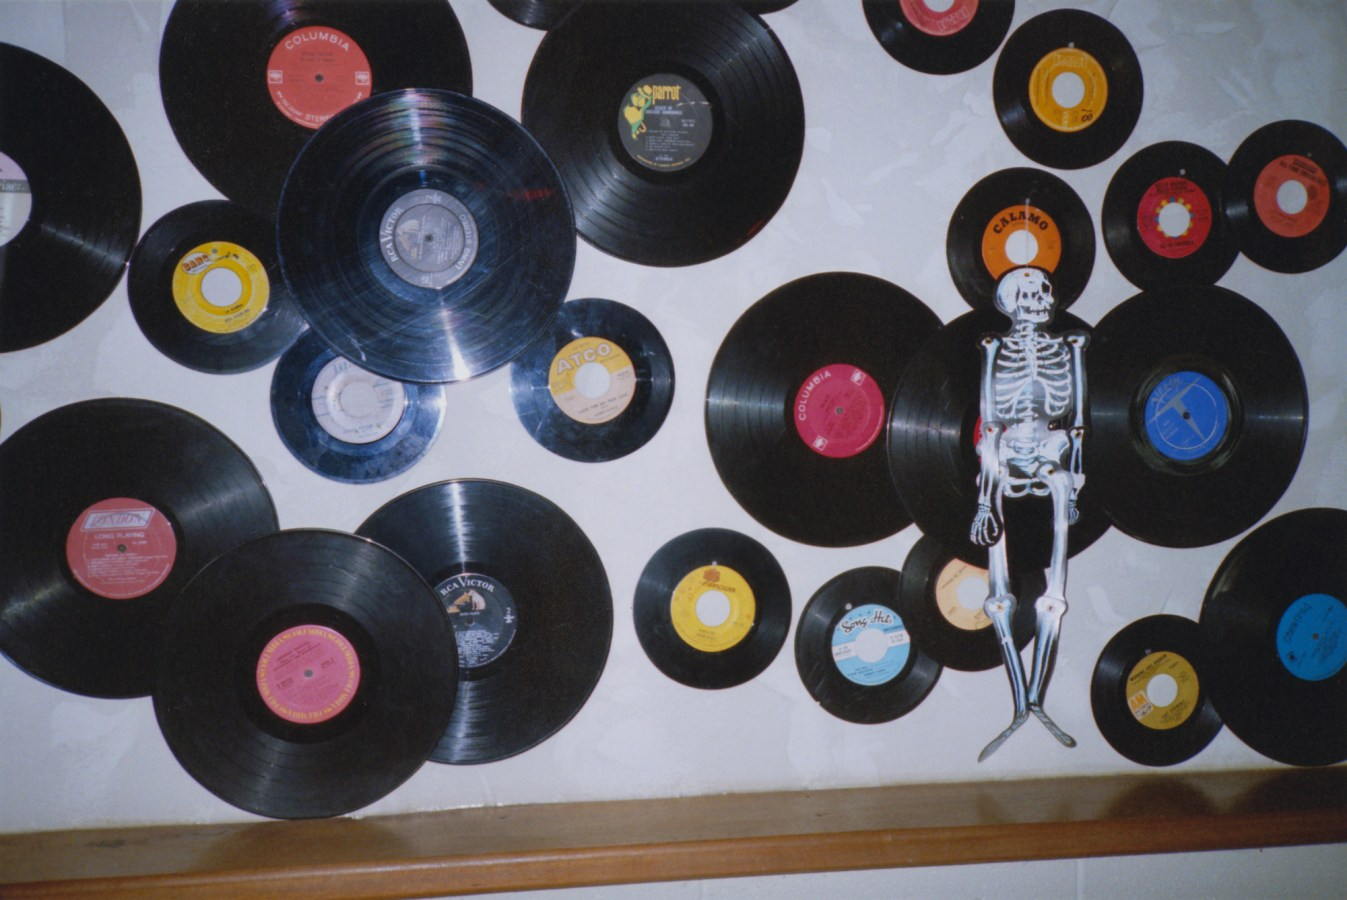 A color photograph of vinyl records mounted to a wall, along with a skeleton halloween decoration